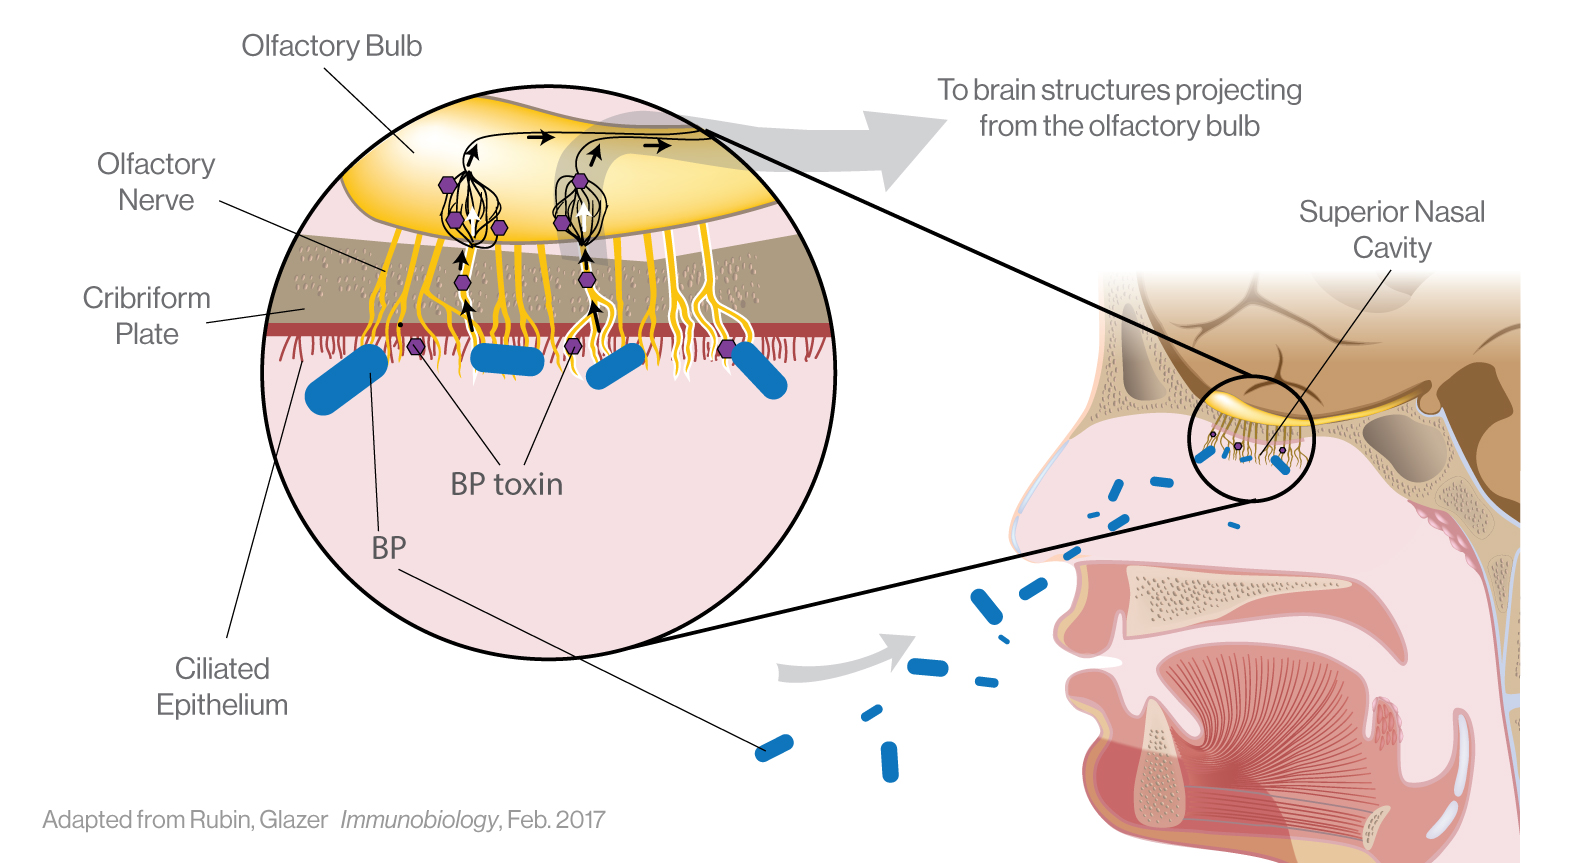 hight resolution of pertussis diagram manual e bookiliad biotechnologiesiliad biotechnologies is partnered with leading scientists to investigate the relationship